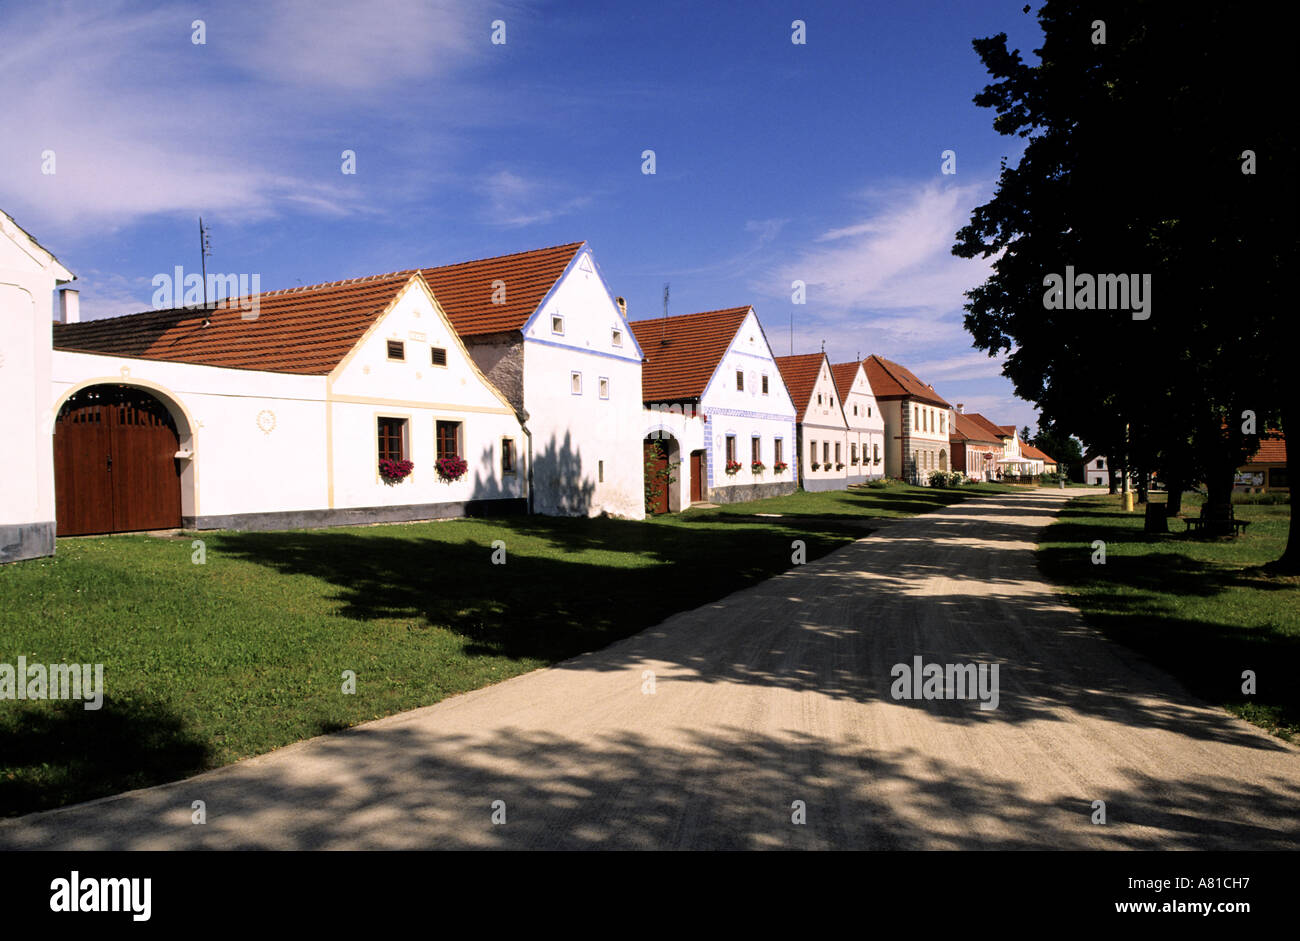 Czech Republic, Bohemia, Holasovice historical village, classified as a World Heritage by the UNESCO - Stock Image